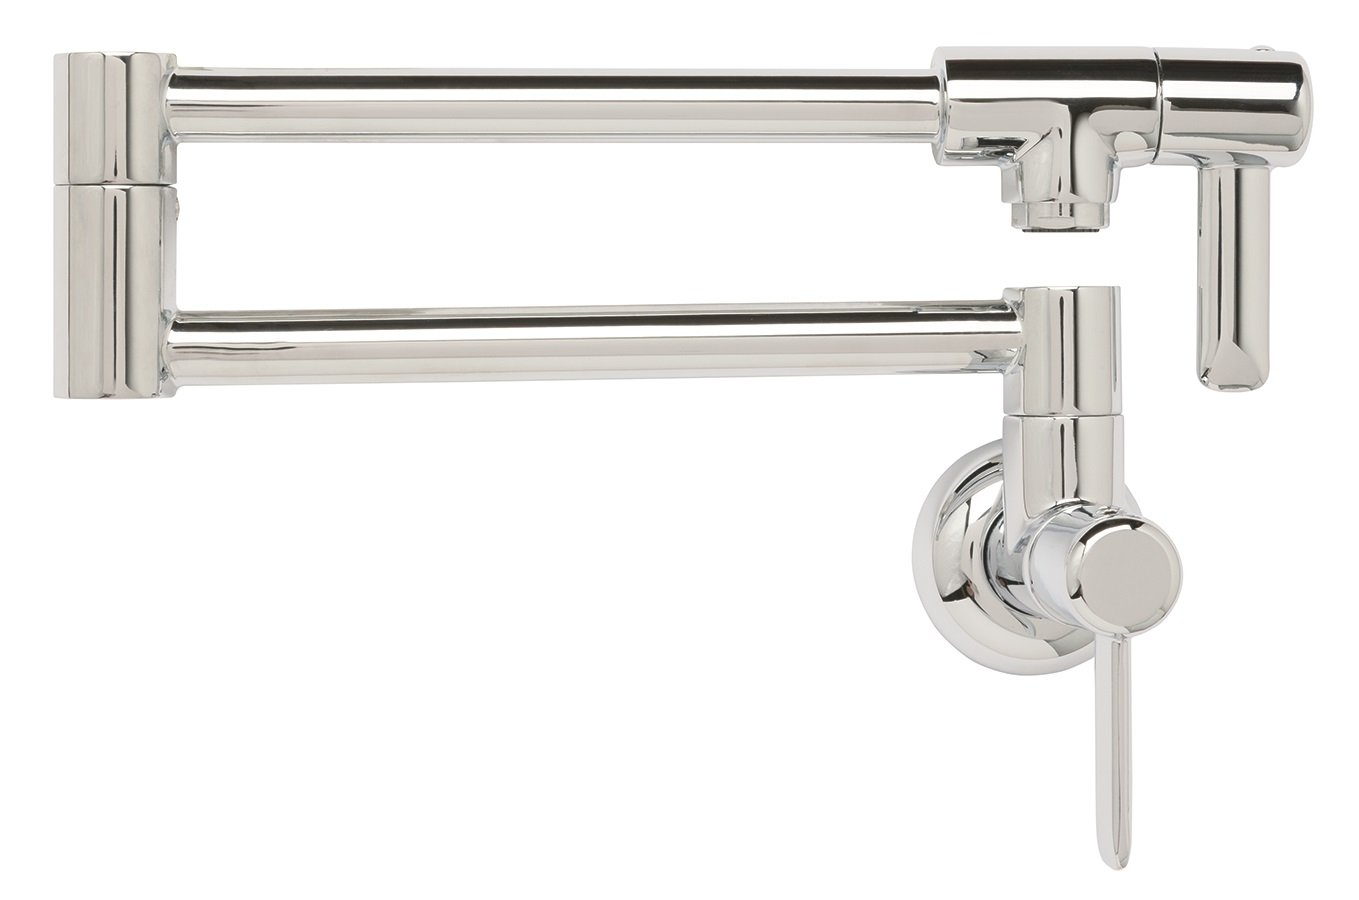 Franke PF3200 Logik Two Handle Wall Mounted Pot Filler, Chrome